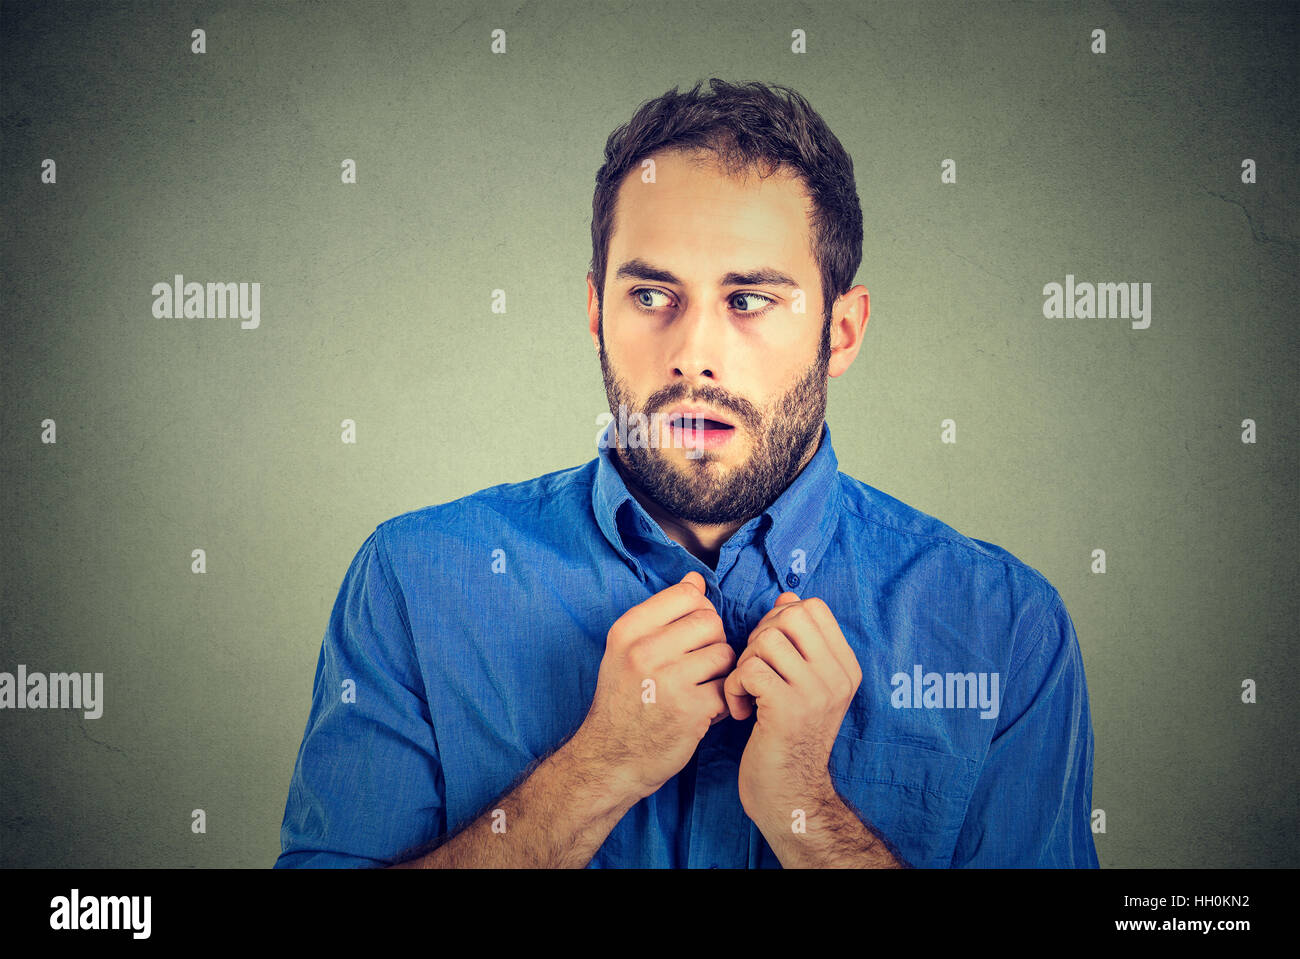 portrait nervous stressed man feels awkward looking sideway anxiously craving something isolated gray background. - Stock Image